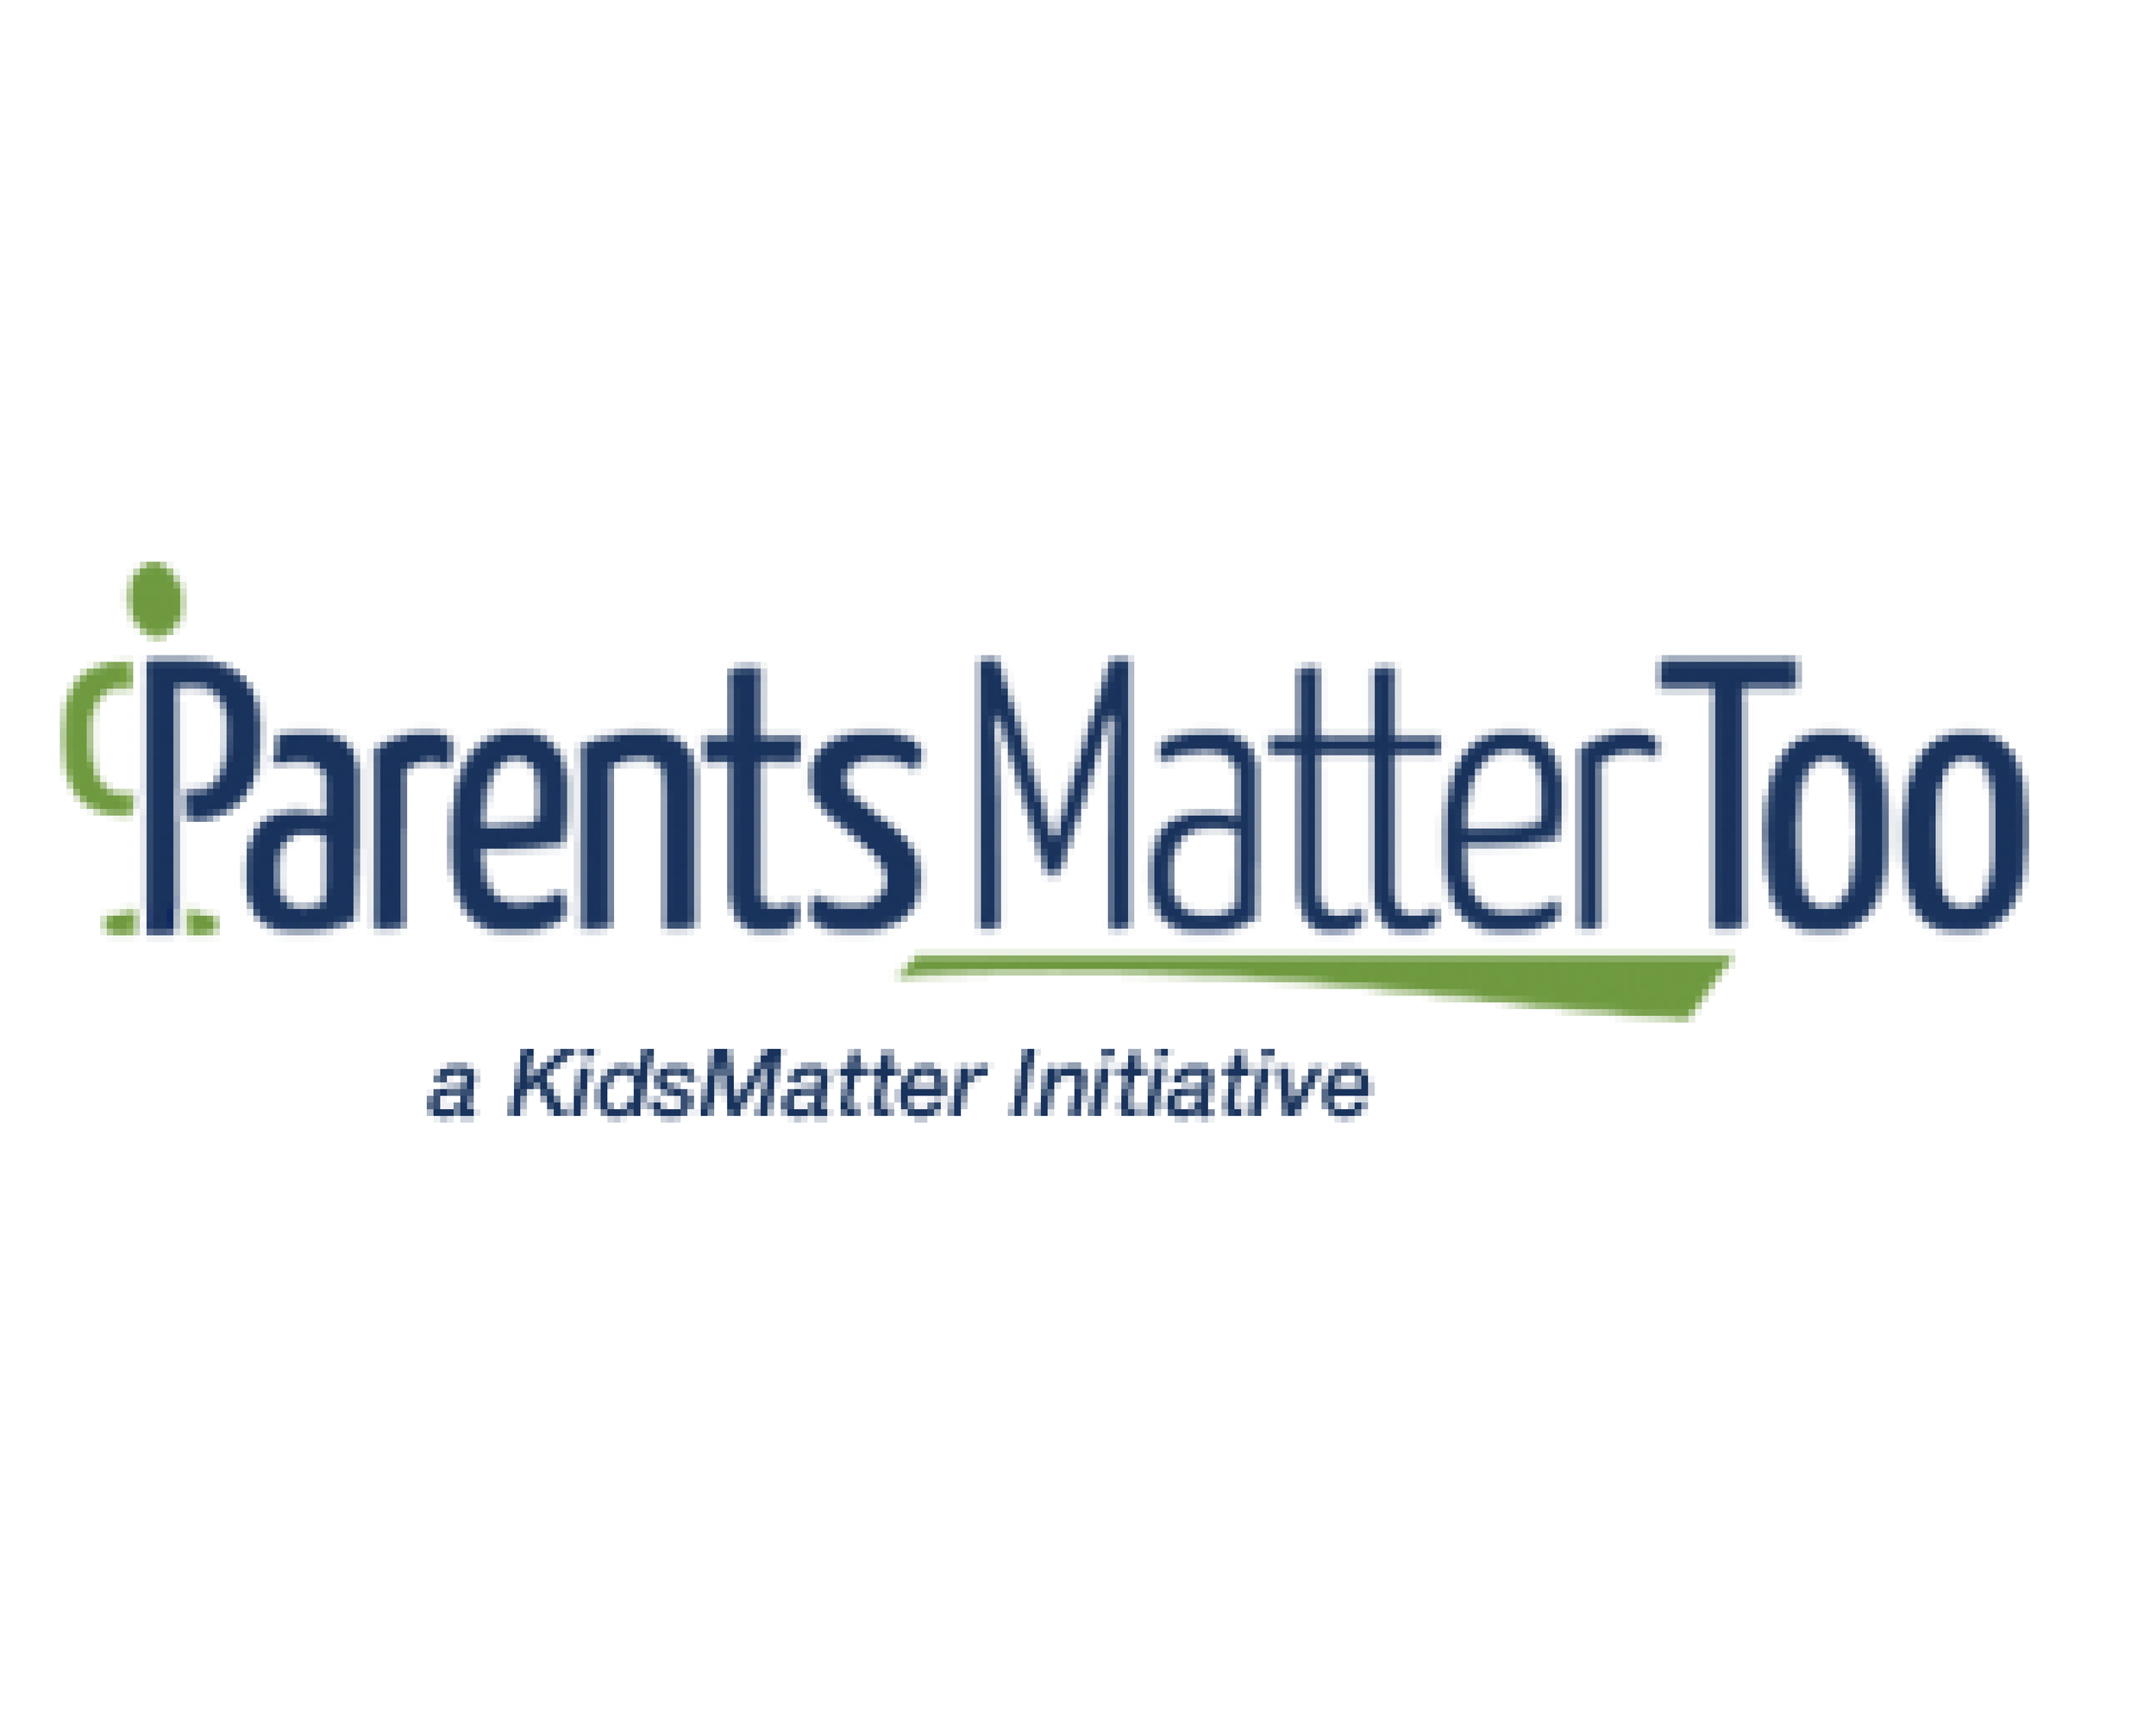 Parenting Resources when Facing Tough Situation - When your teen is facing a tough situation, it's a lot easier to help them handle it when you're armed with knowledge. These Parent resources from leading experts can help you feel confident and informed when having those sensitive conversations with your teen.